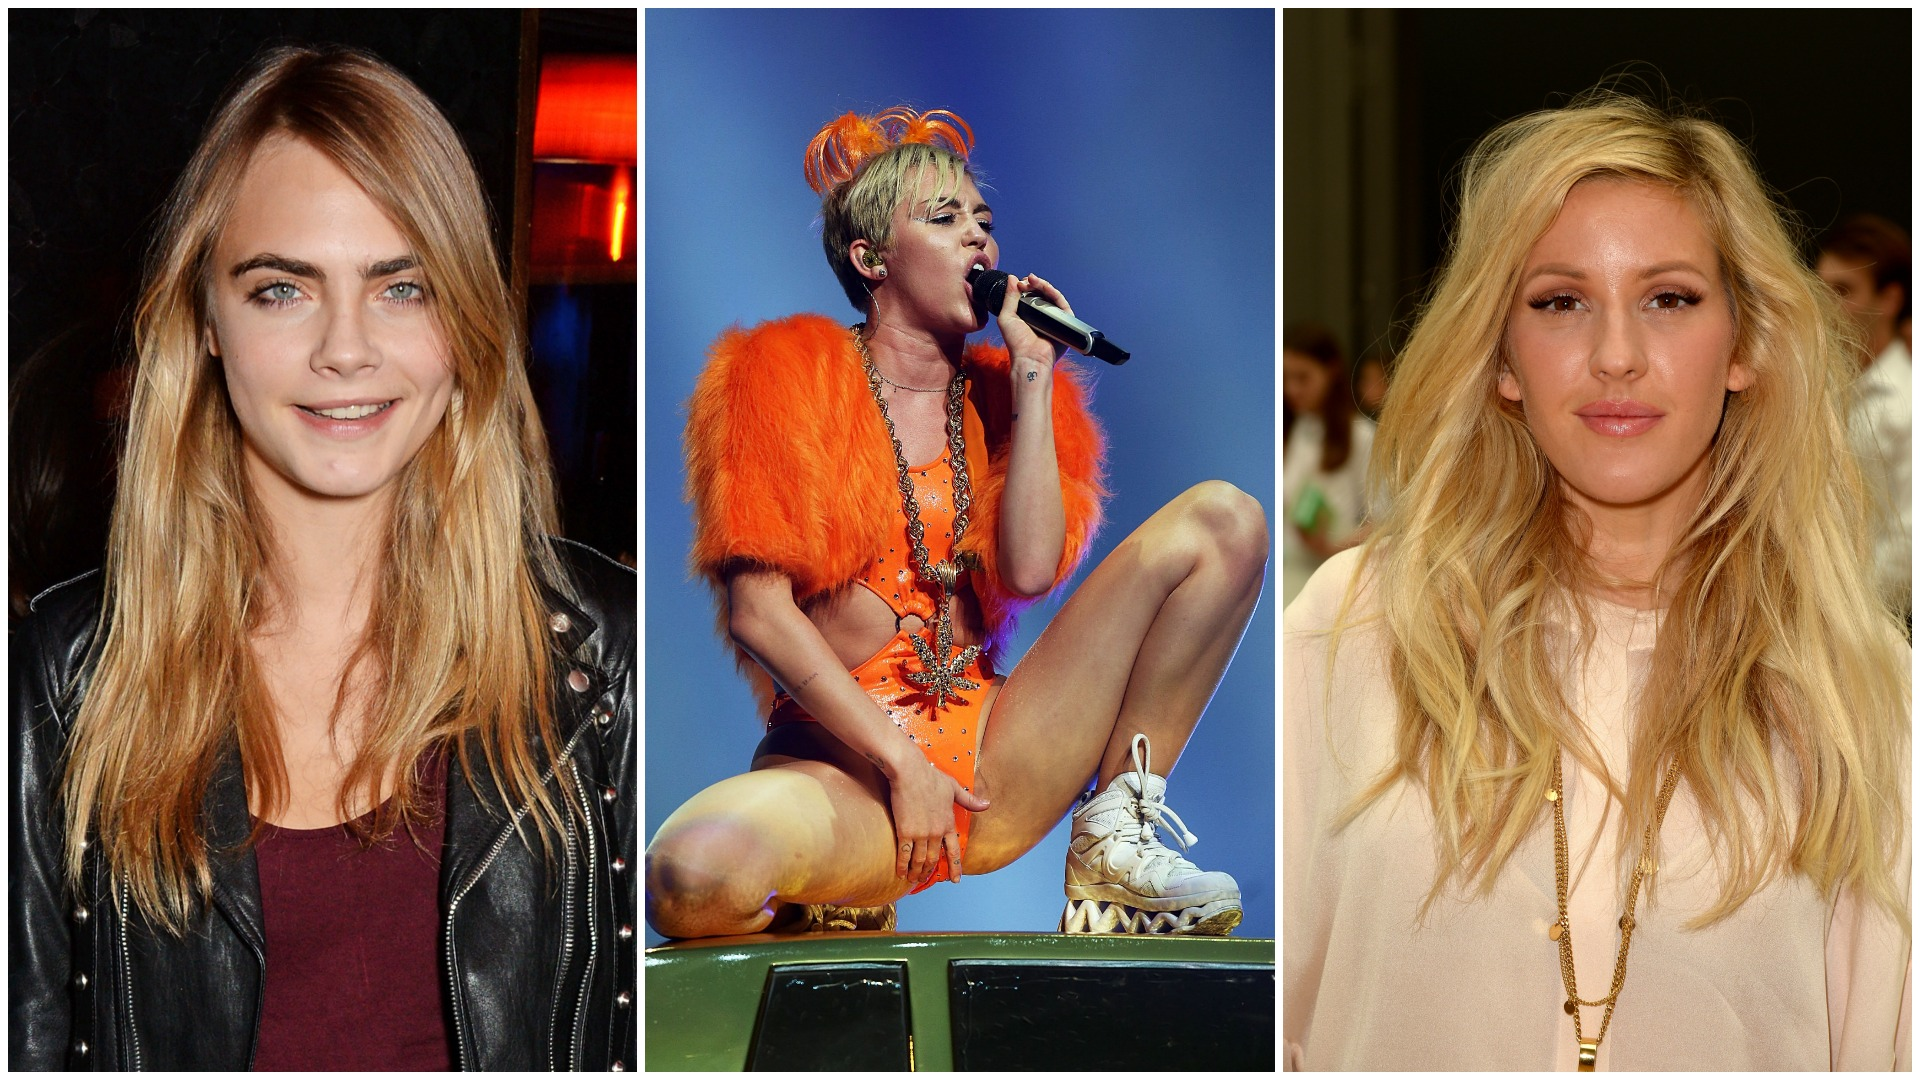 Cara Delevingne Miley Cyrus and Ellie Goulding are #feelingnuts